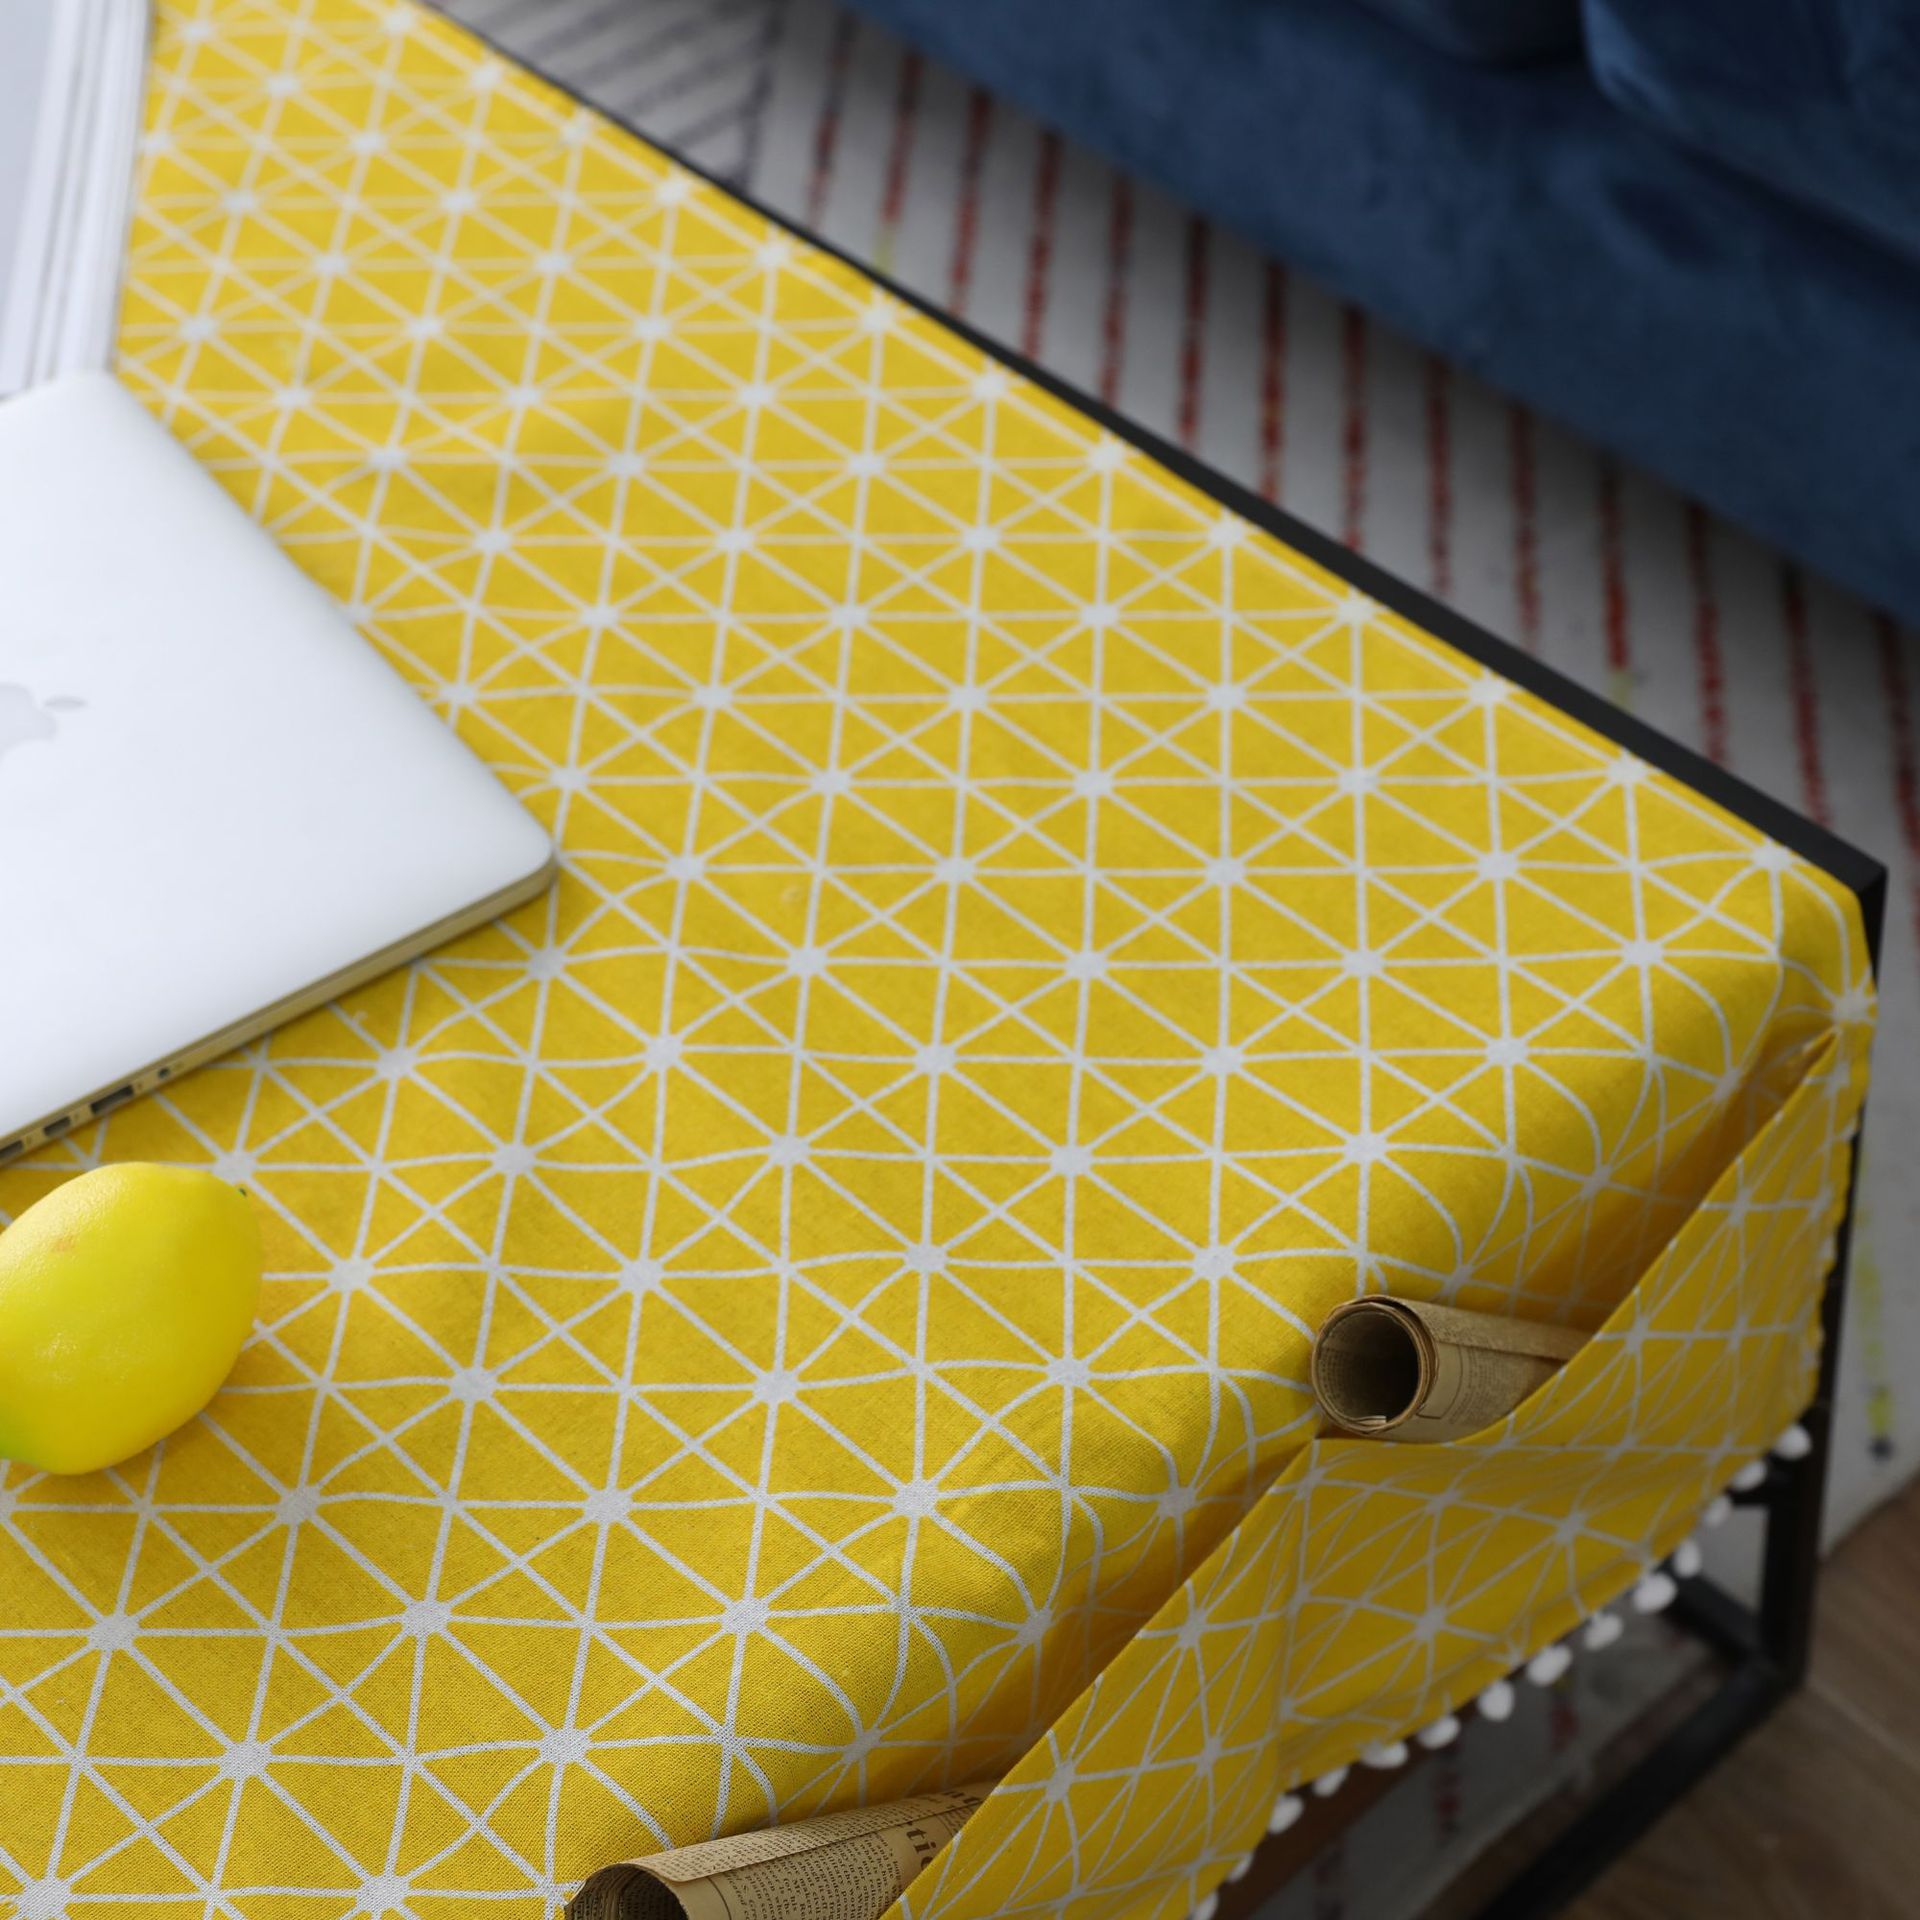 Yellow Board Grid Table Cloth with Three Pocket Ear of Wheat Nappe TV Bench Mantel Rectangular Tea Table Cover Toalha De Mesa